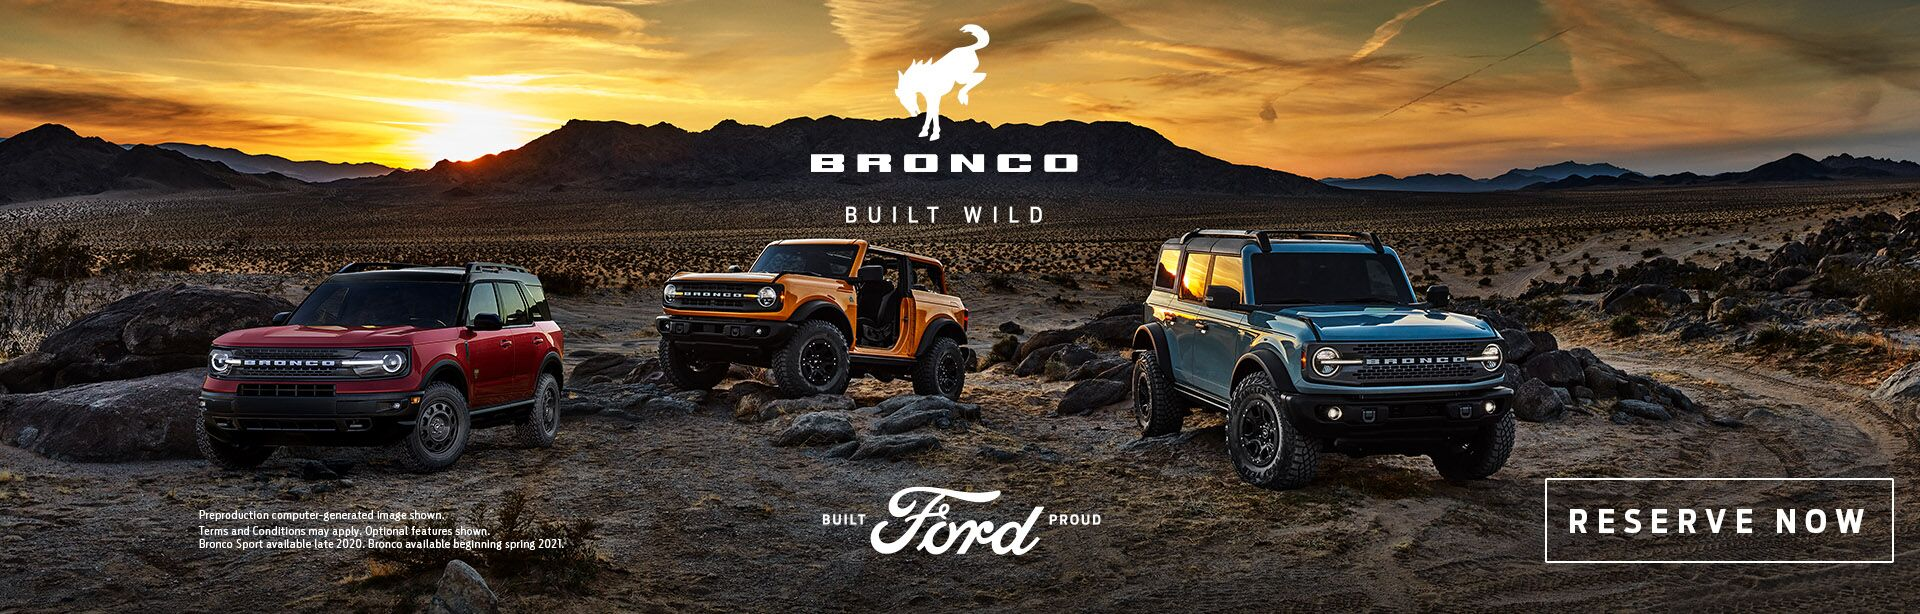 Reserve the ford bronco